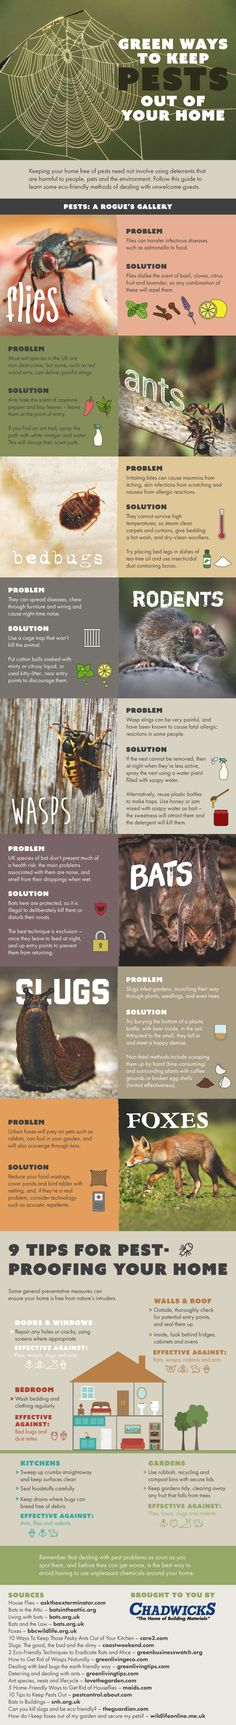 Green Ways To Keep Pests Out Of Your Home